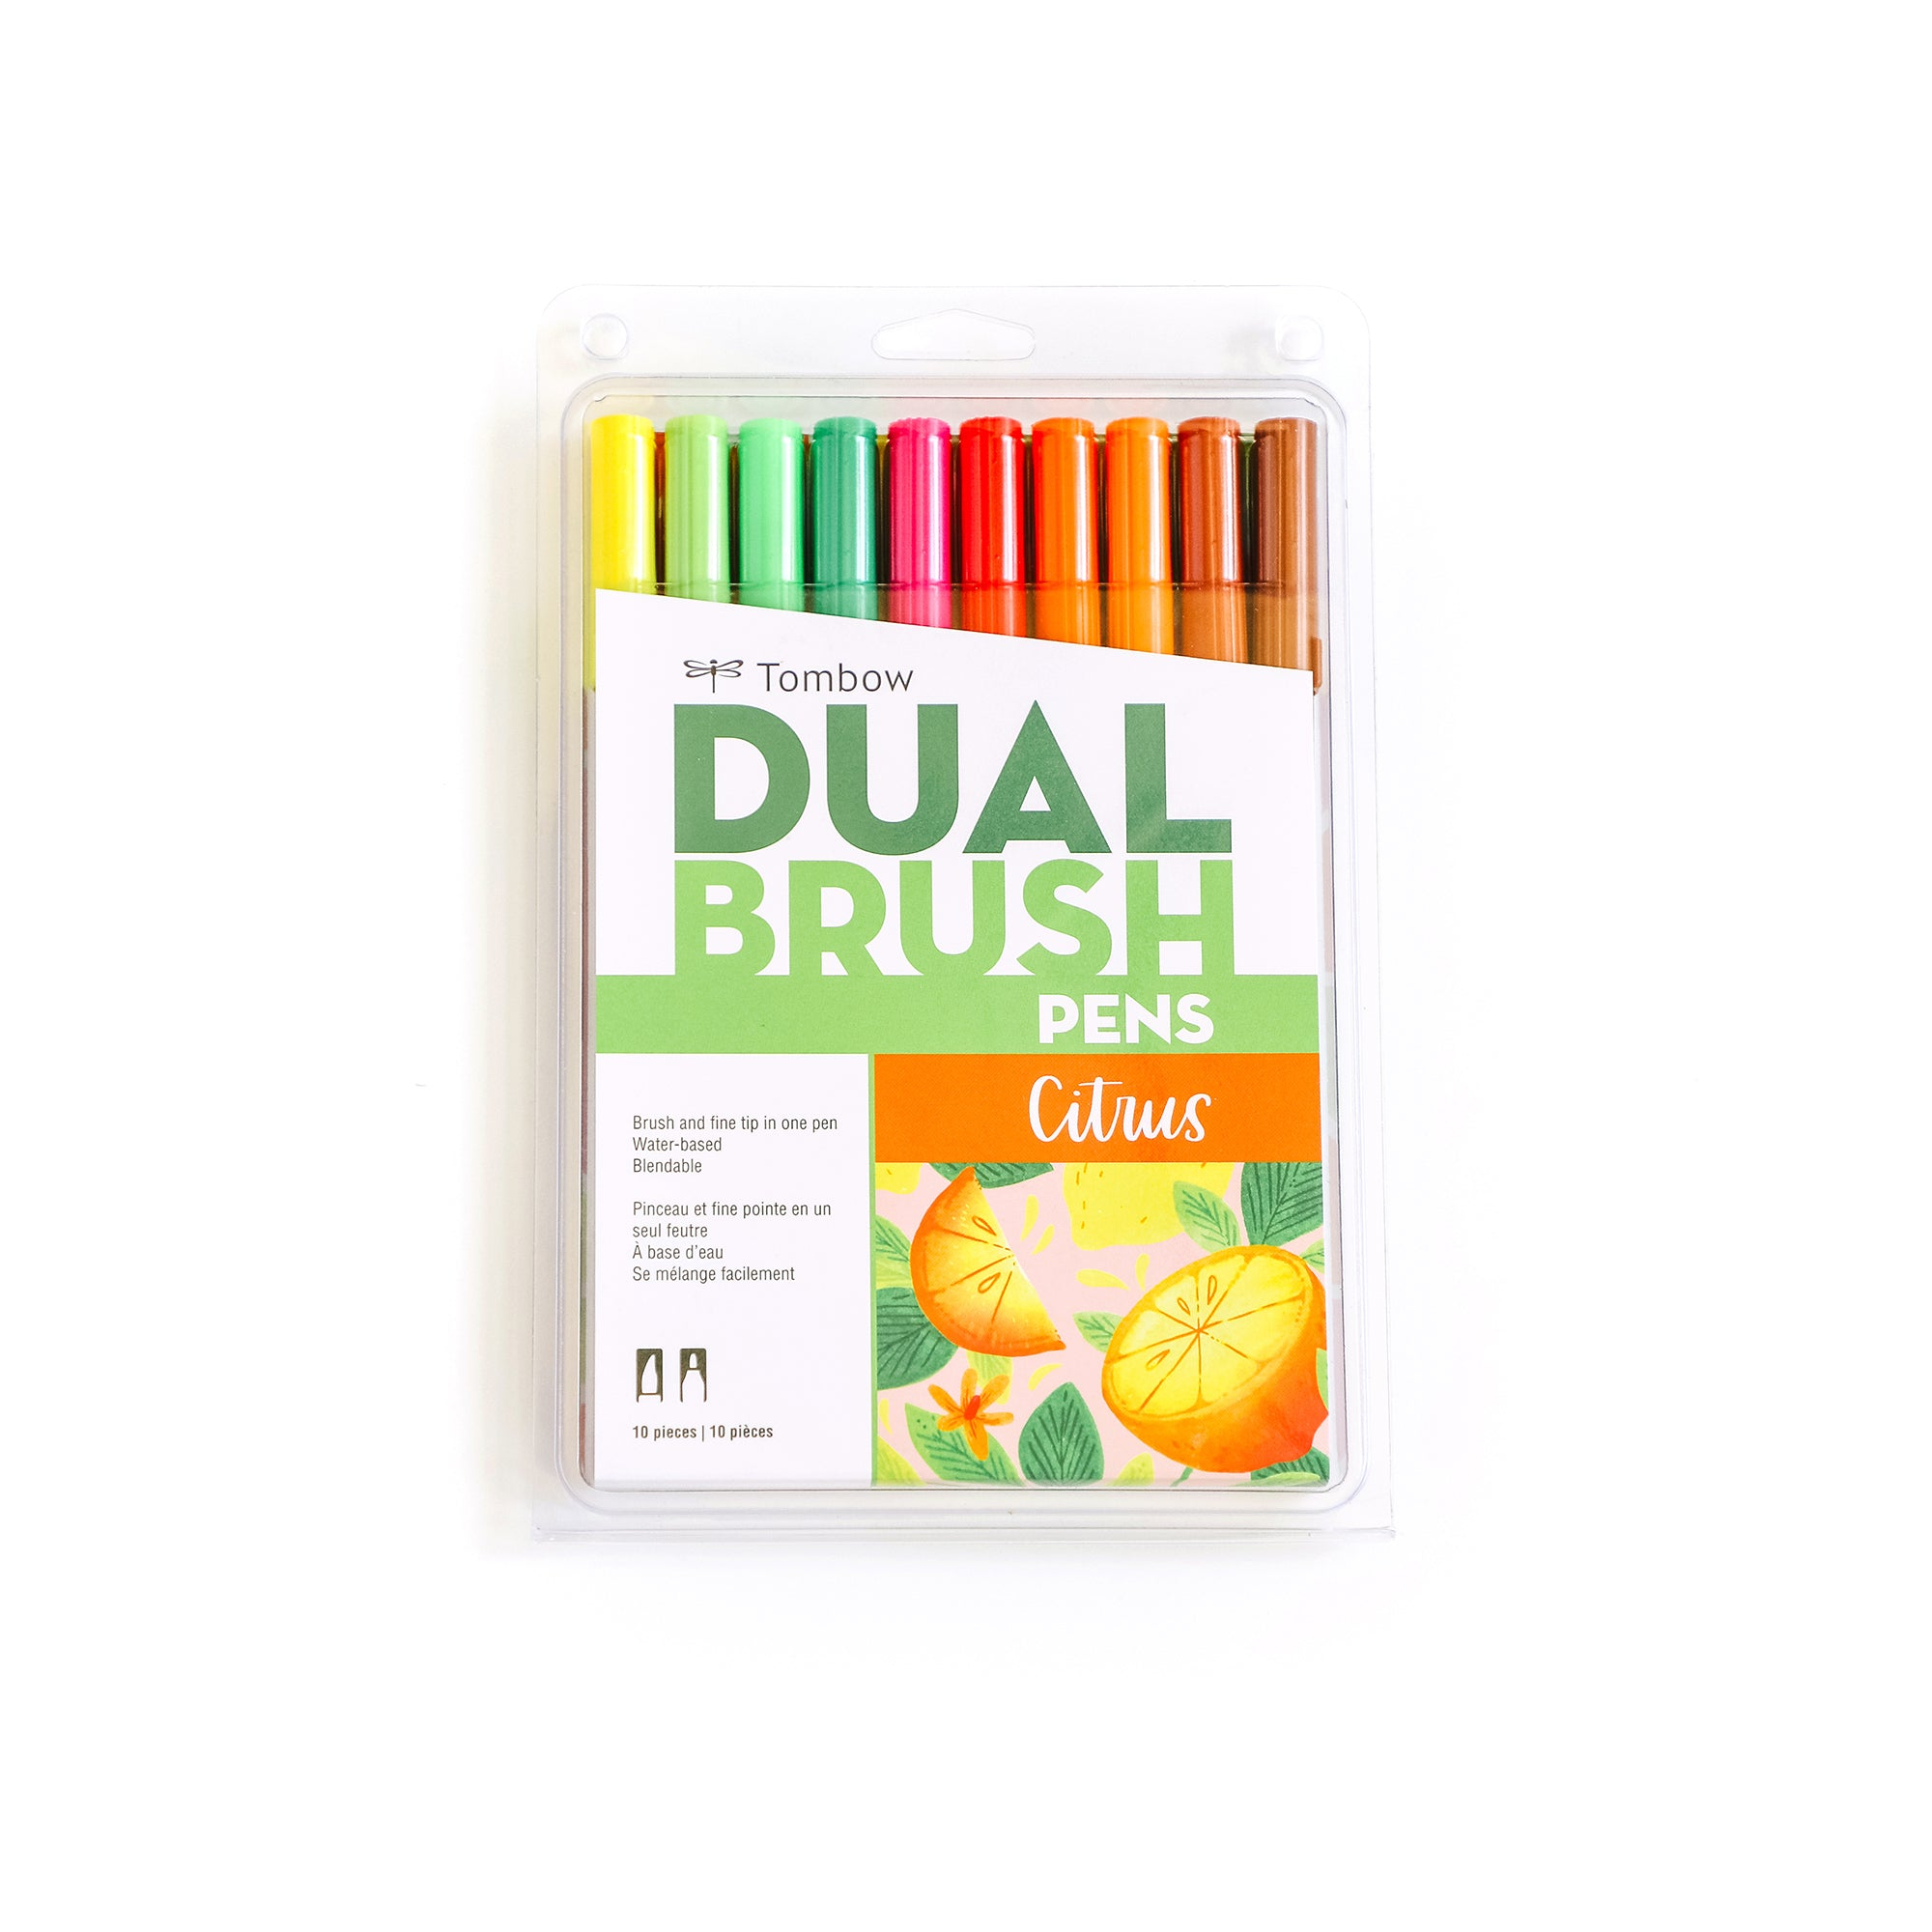 Citrus - Dual Brush Pens